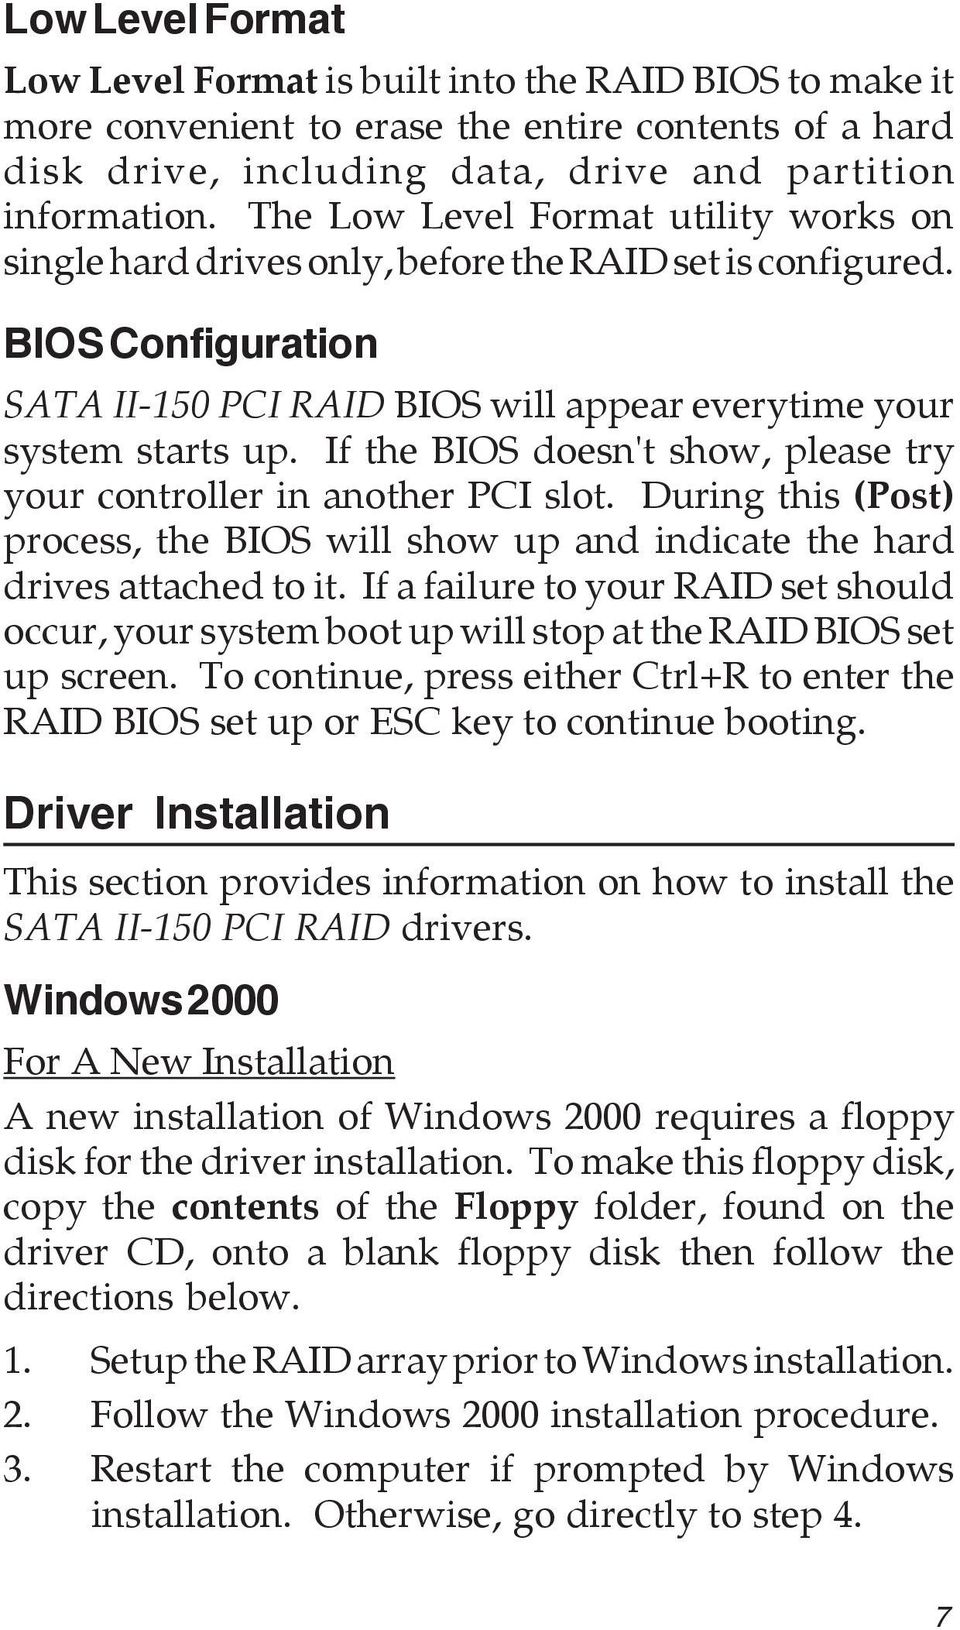 If the BIOS doesn't show, please try your controller in another PCI slot. During this (Post) process, the BIOS will show up and indicate the hard drives attached to it.